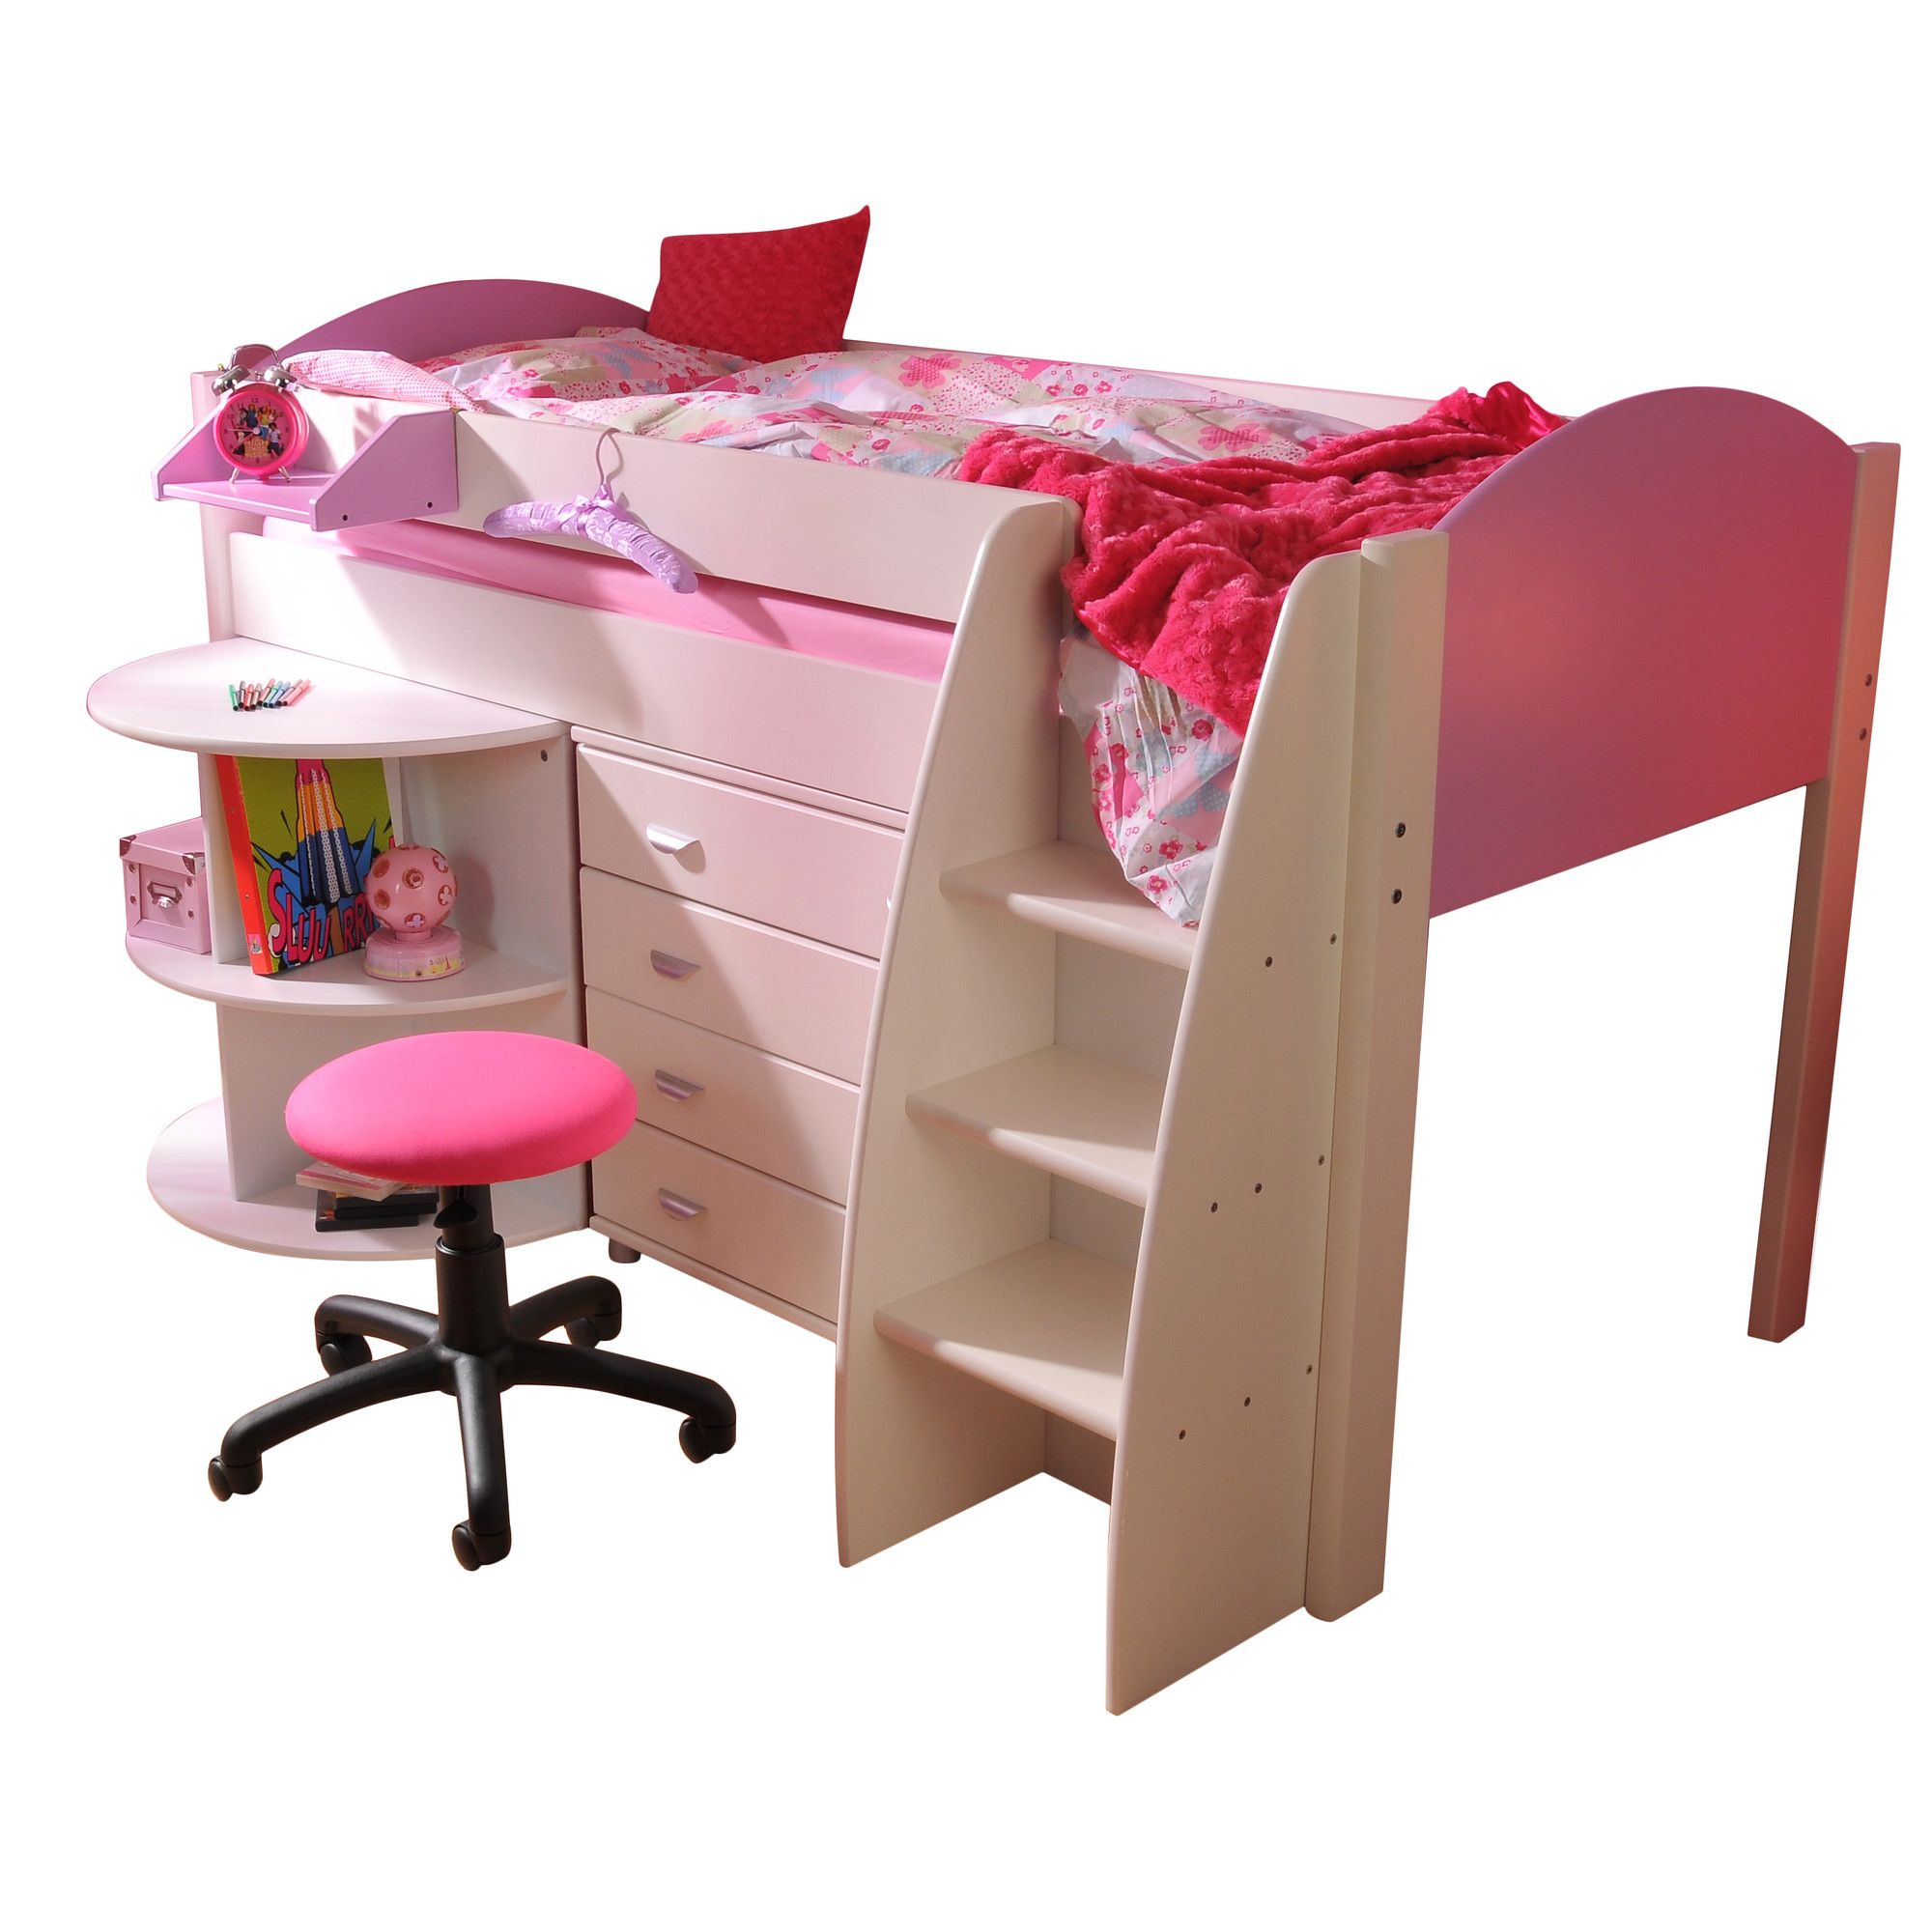 Stompa Rondo Mid Sleeper with 4 Drawer Chest and Extending Desk - Blue - White at Tesco Direct